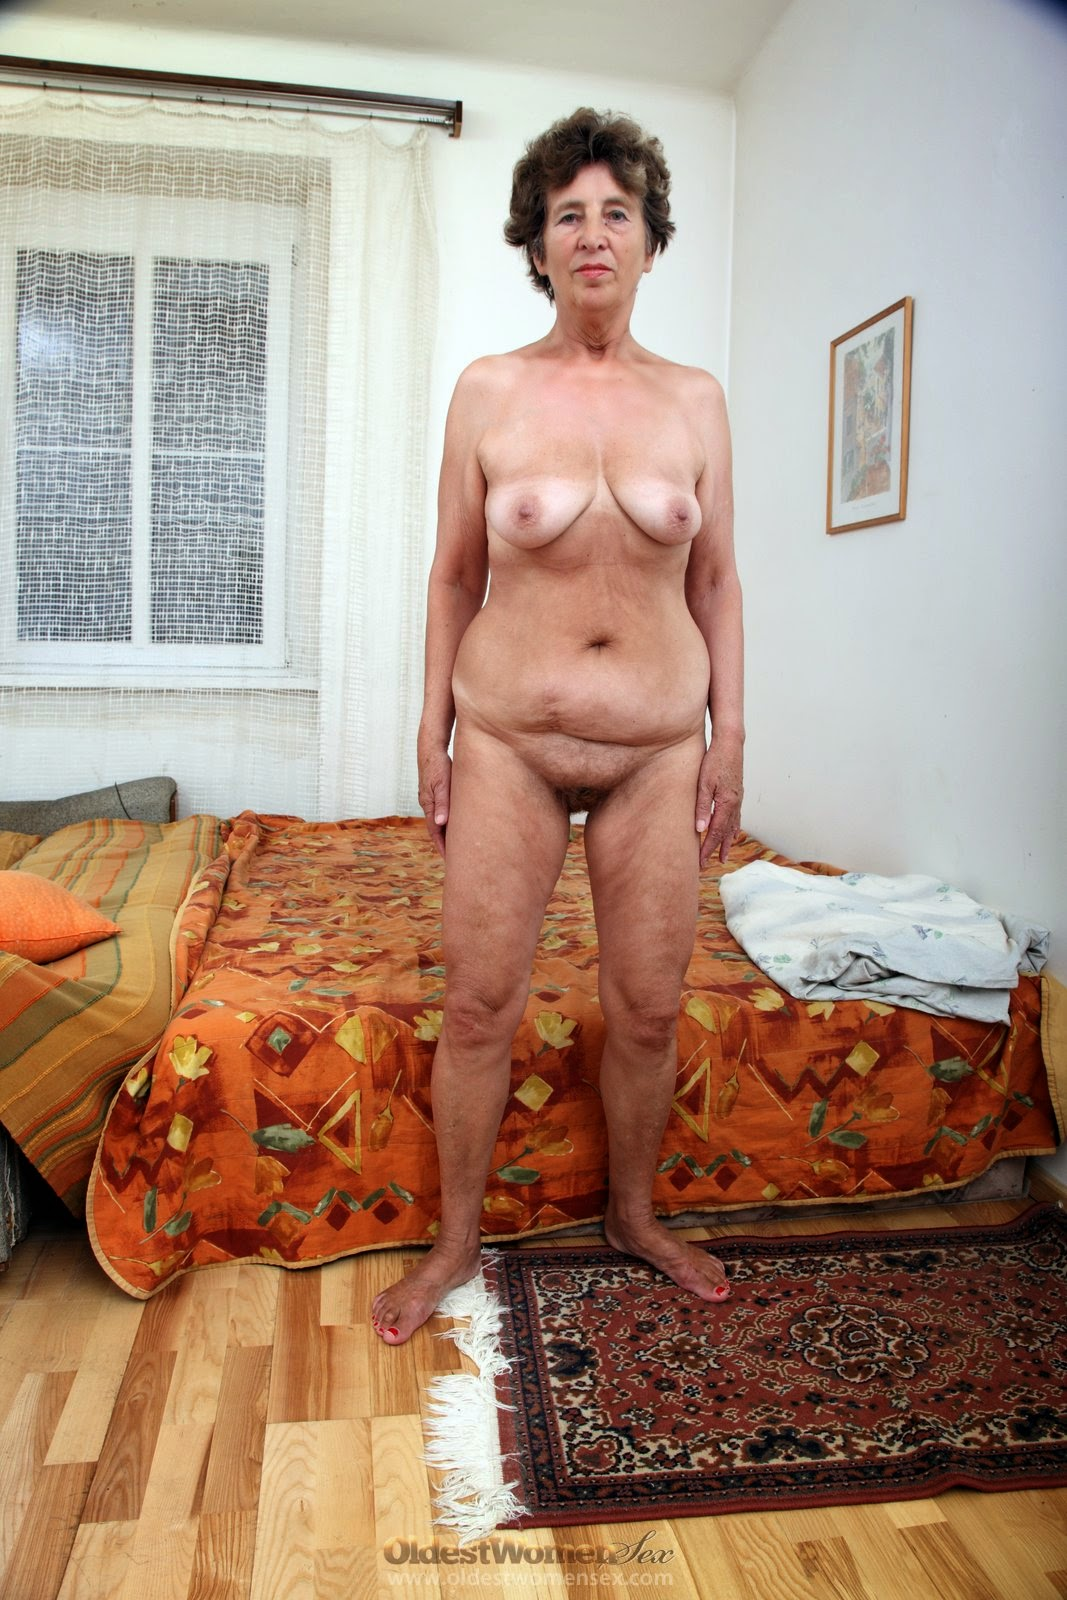 from Benton old woman sex nude